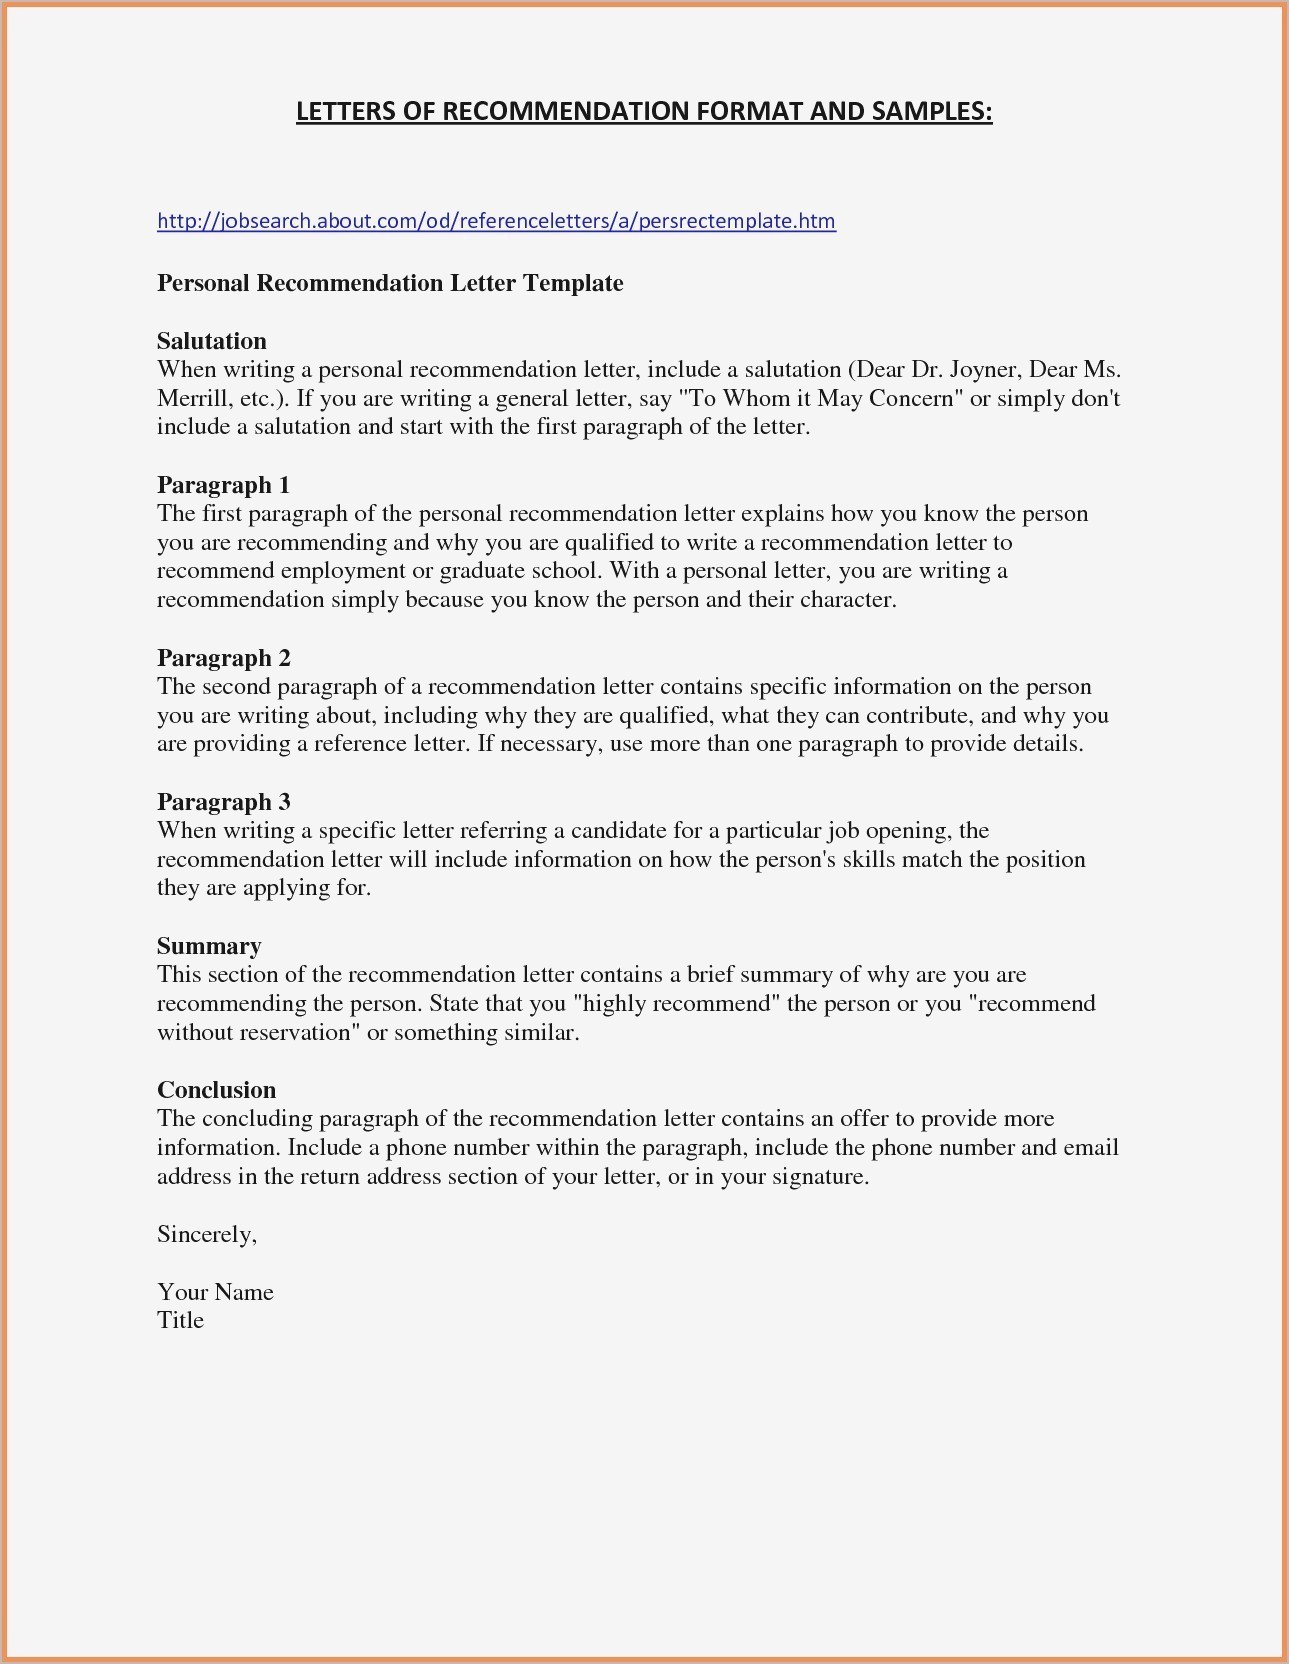 Letter Of Recommendation Letter Template - Job Re Mendation Letter Samples Valid Sample Job Re Mendation